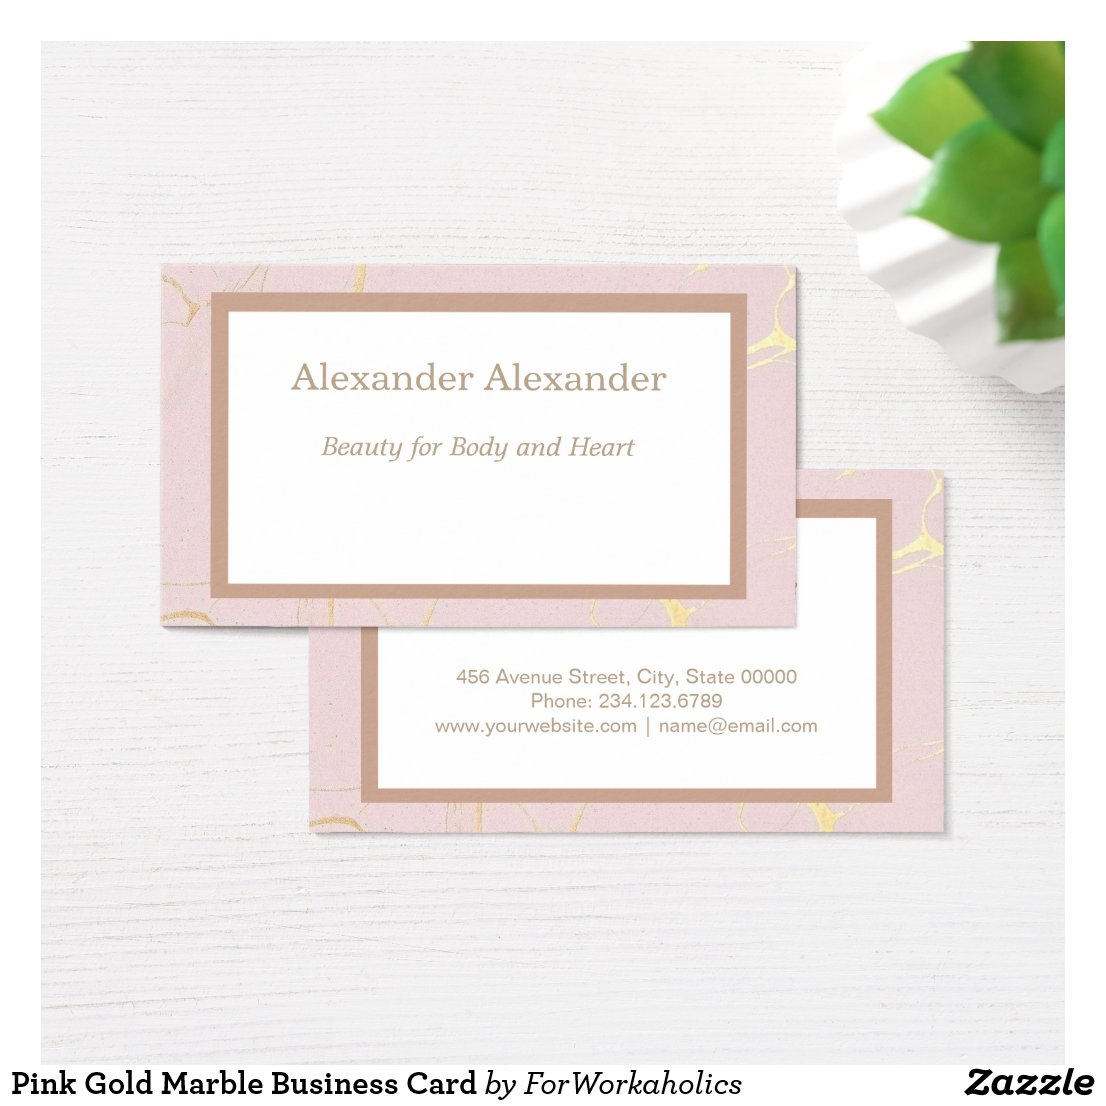 Pink Gold Marble Business Card